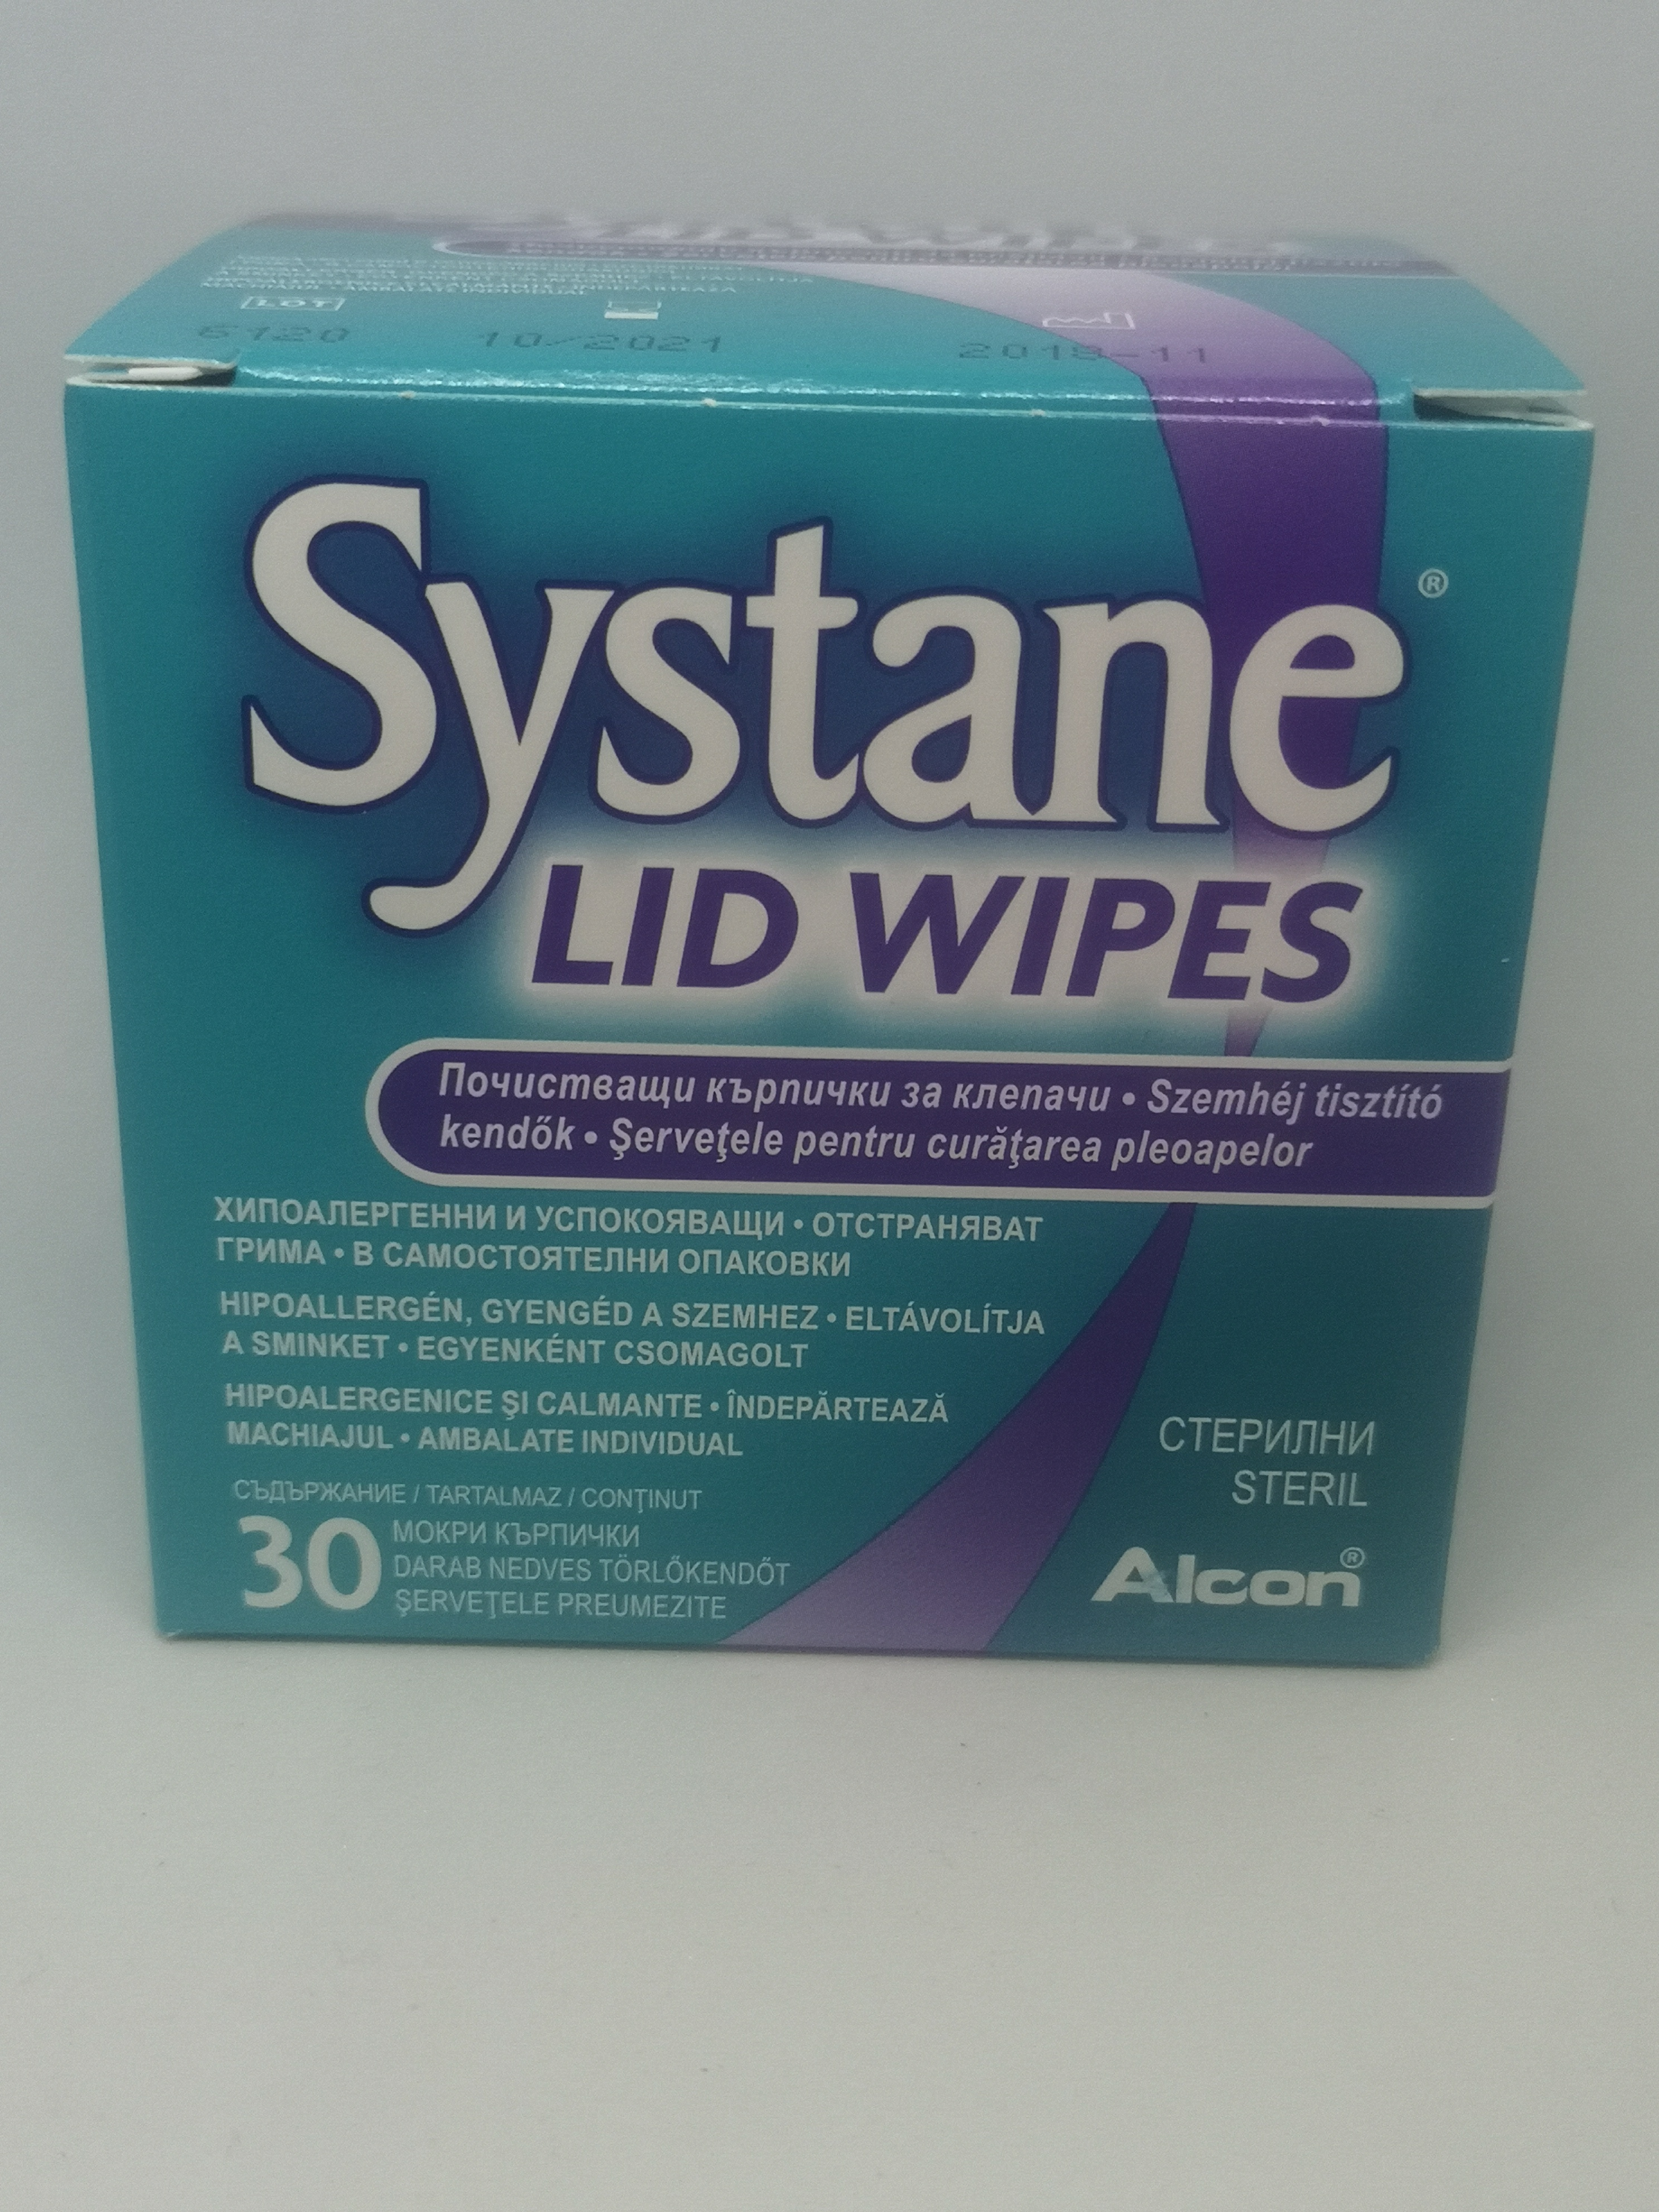 Systane Lid Wipes